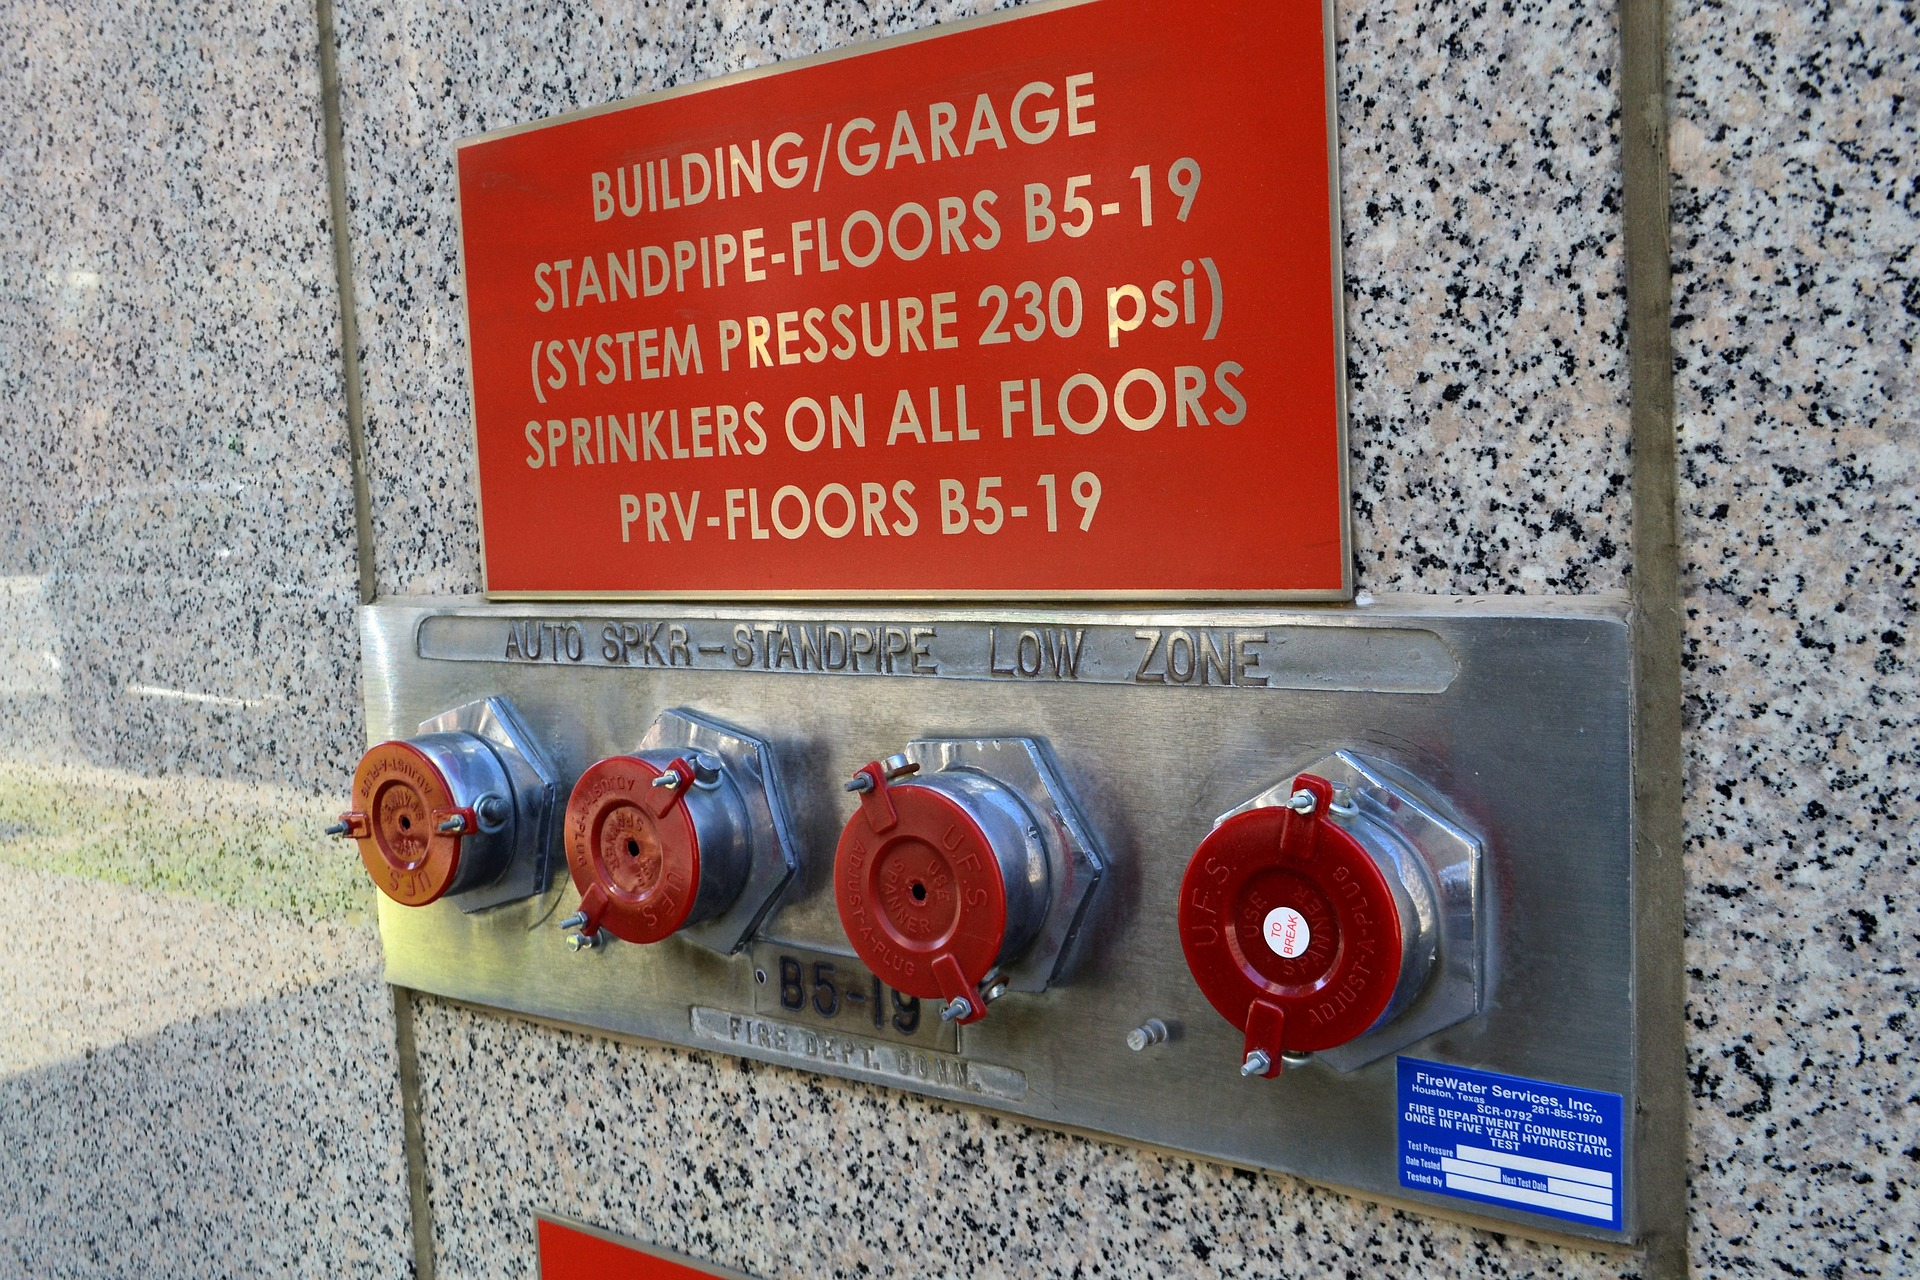 sprinkler valves outside building for ISO Inspection